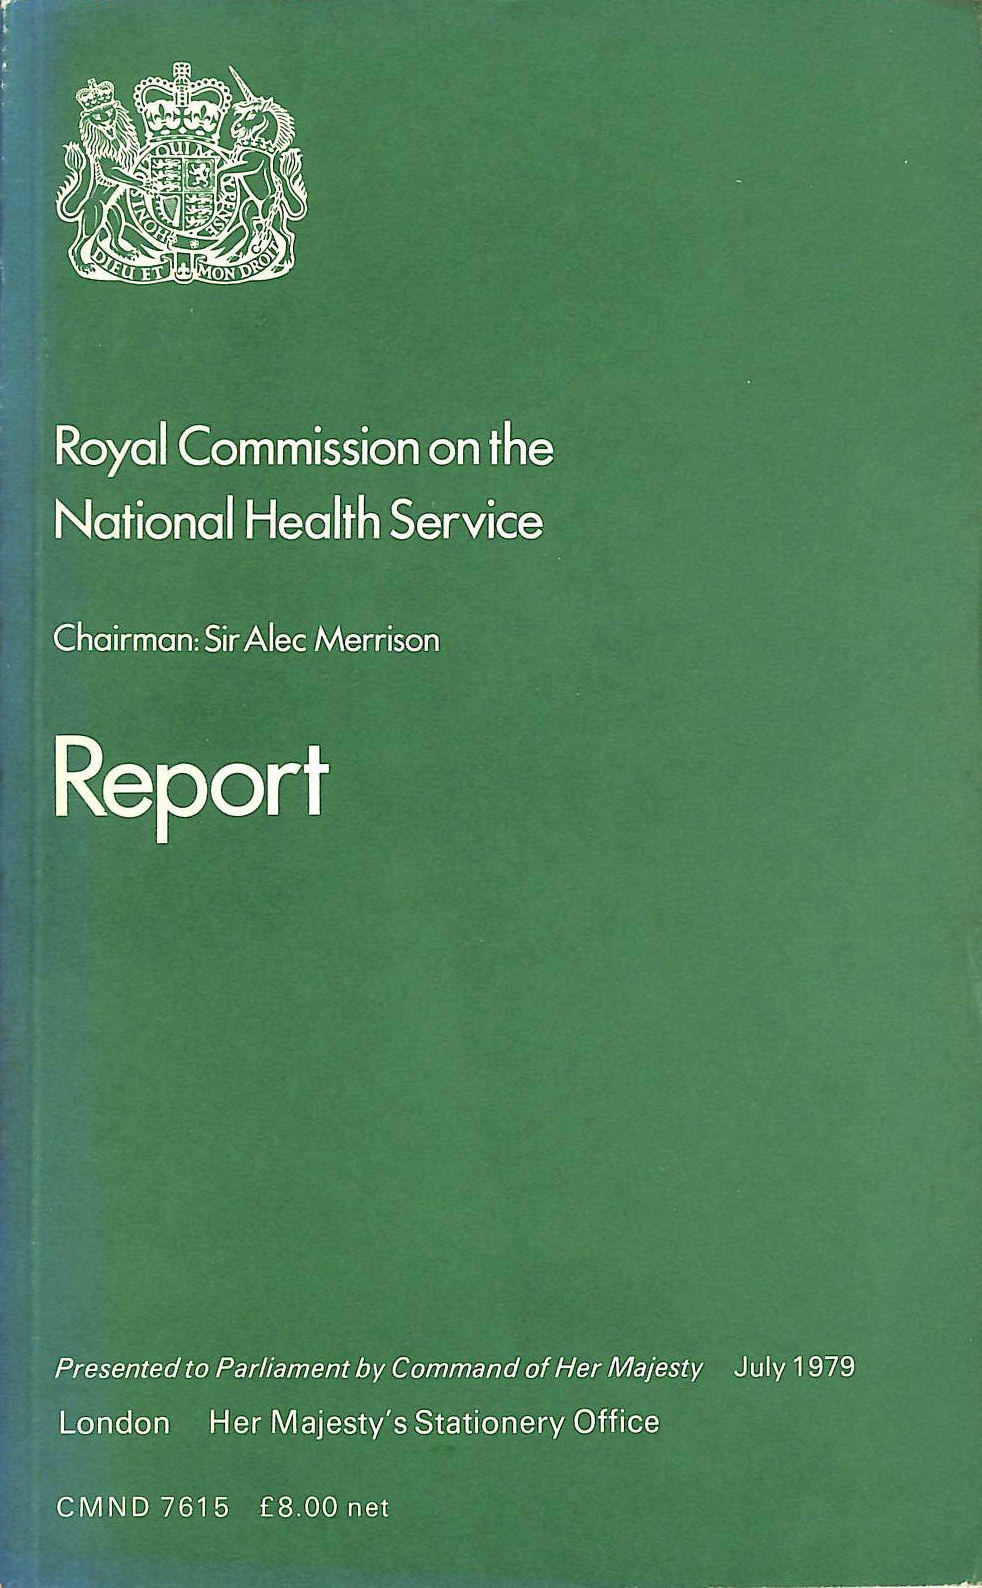 Image for Royal Commission on the National Health Service: Report (Command 7615)